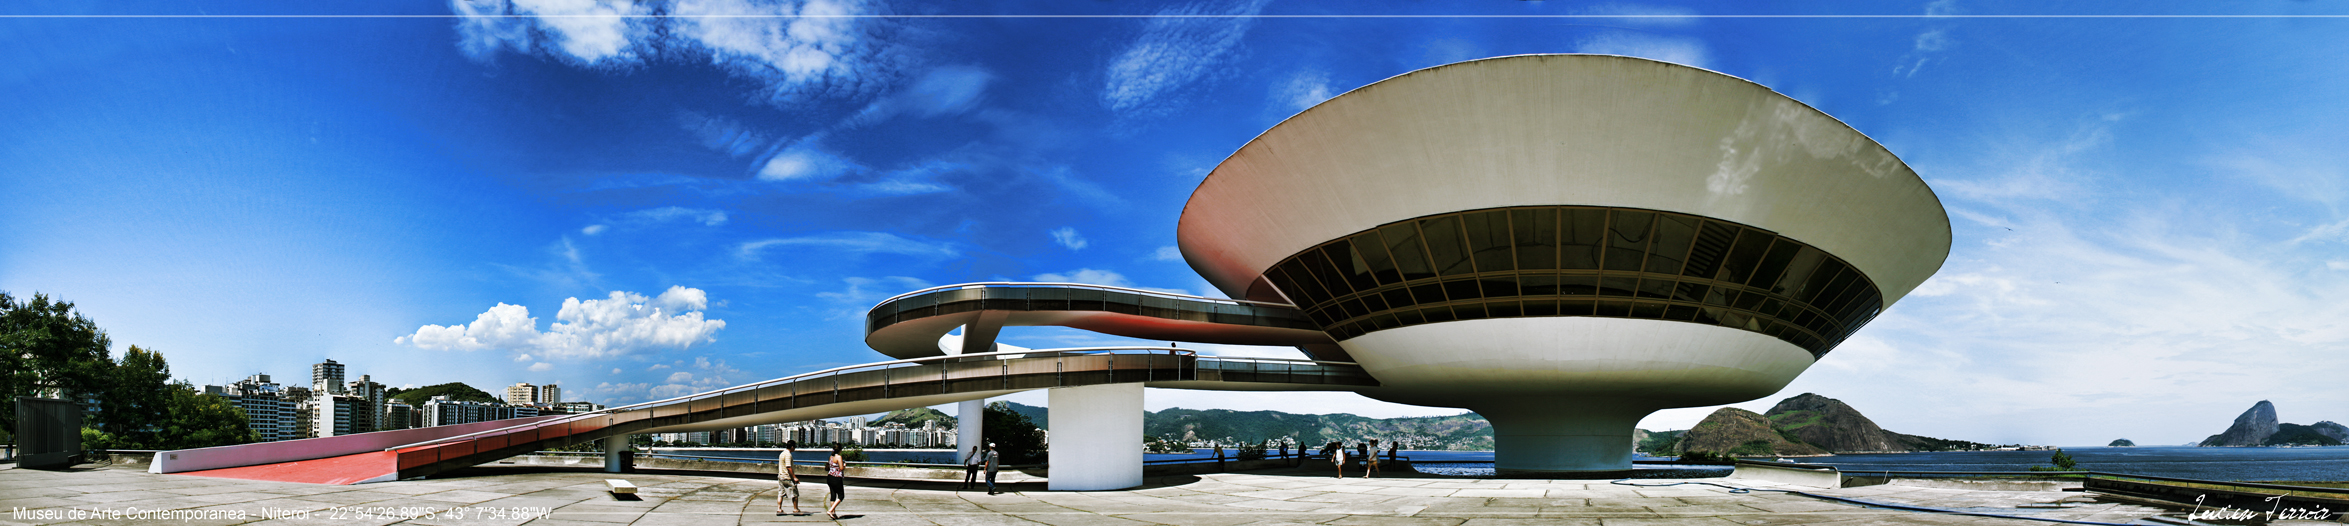 MAC_Niteroi_by_aneurocircles